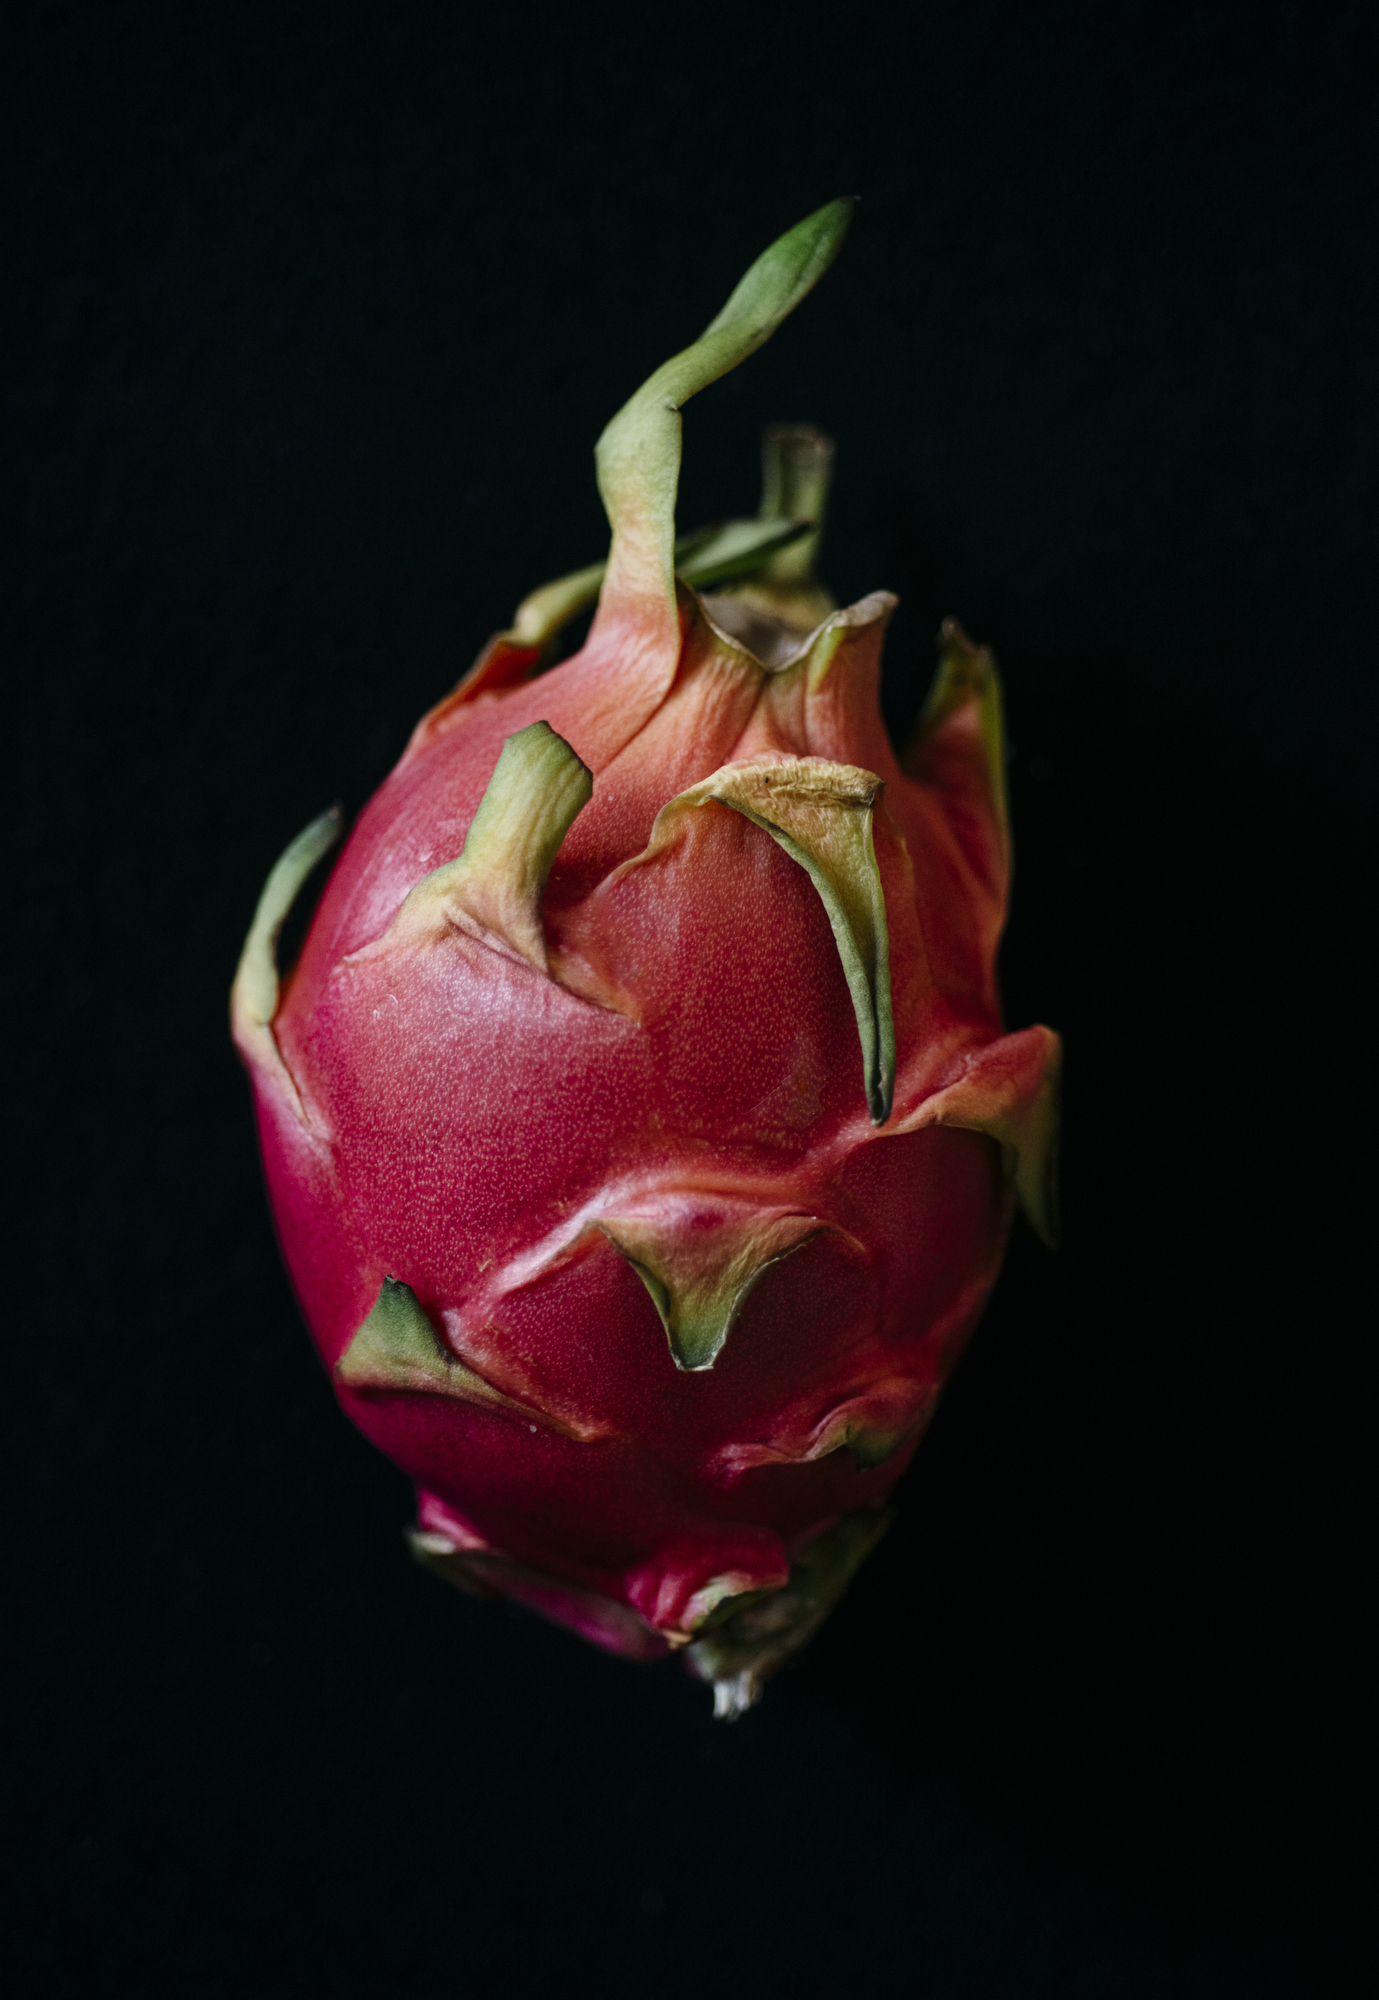 Image of a Dragonfruit on black by Los Angeles Food Photographer Rebecca Peloquin Photography as part of Dramatic Produce series